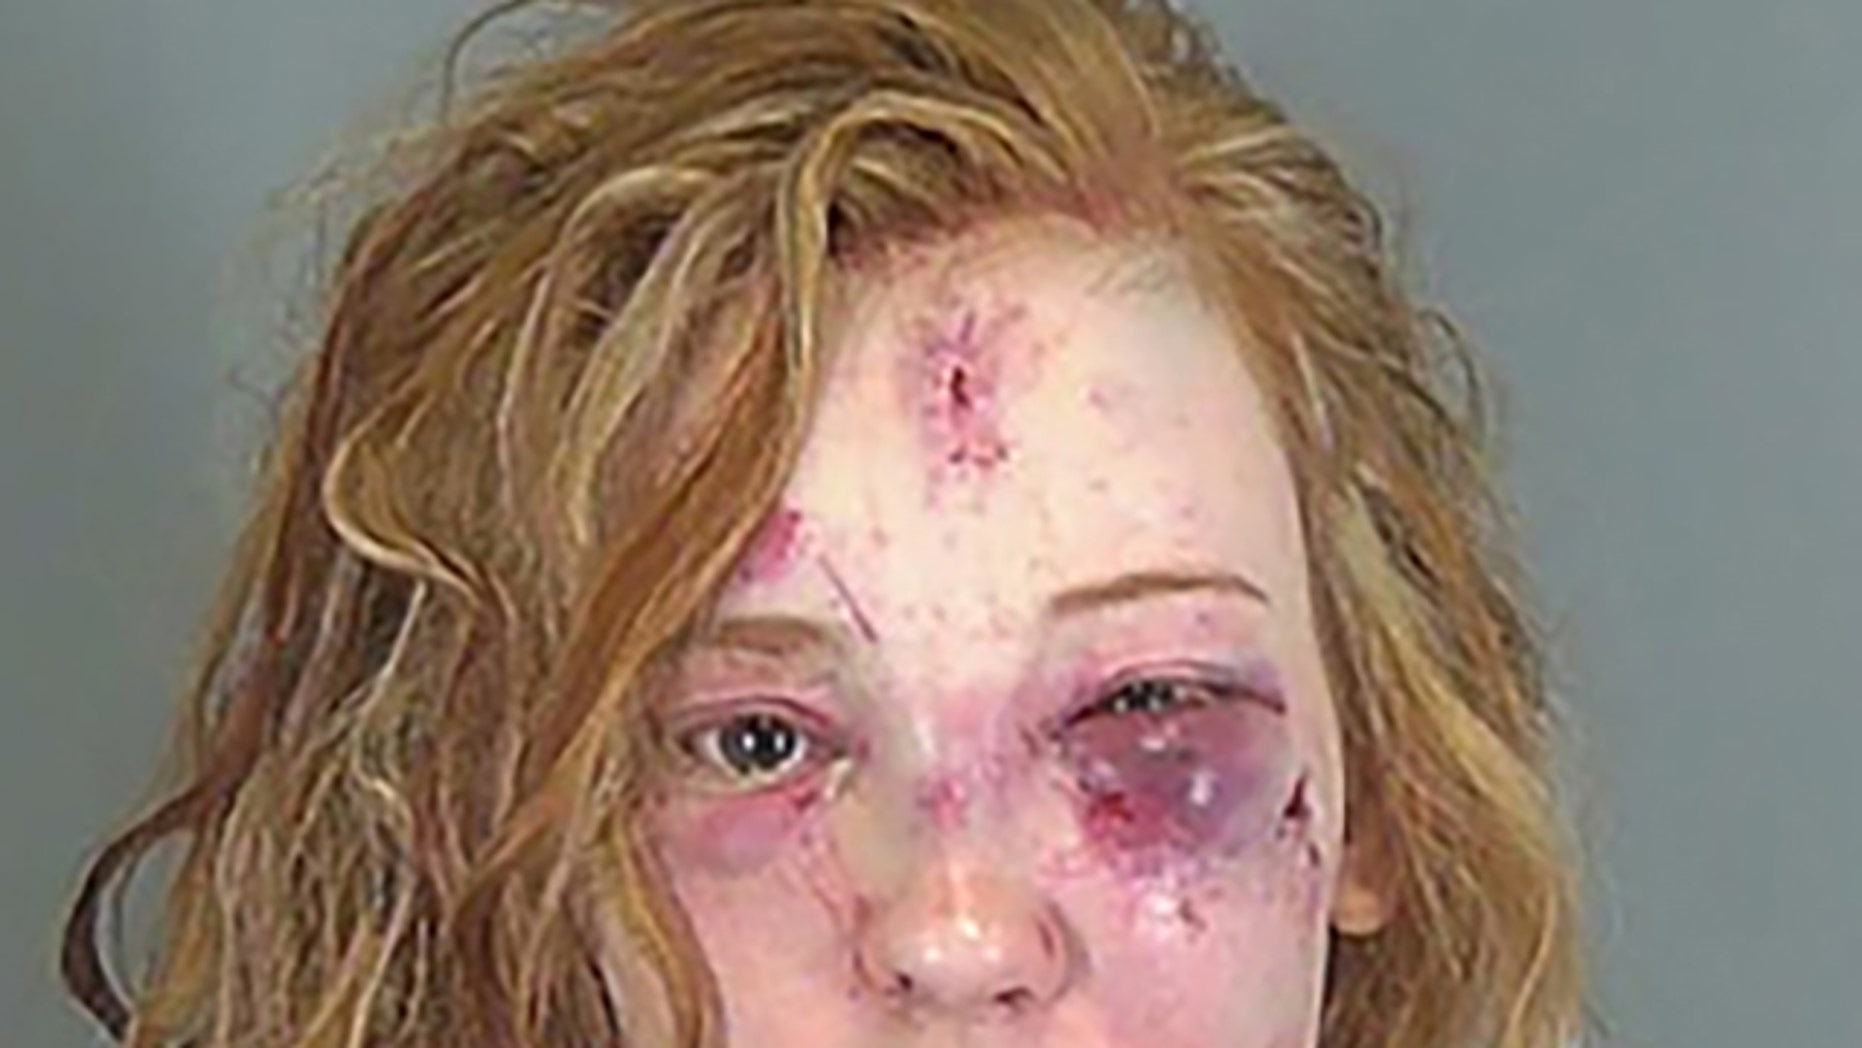 Savanna Grace White, 22, was arrested in an alleged stun-gun attack, police said.